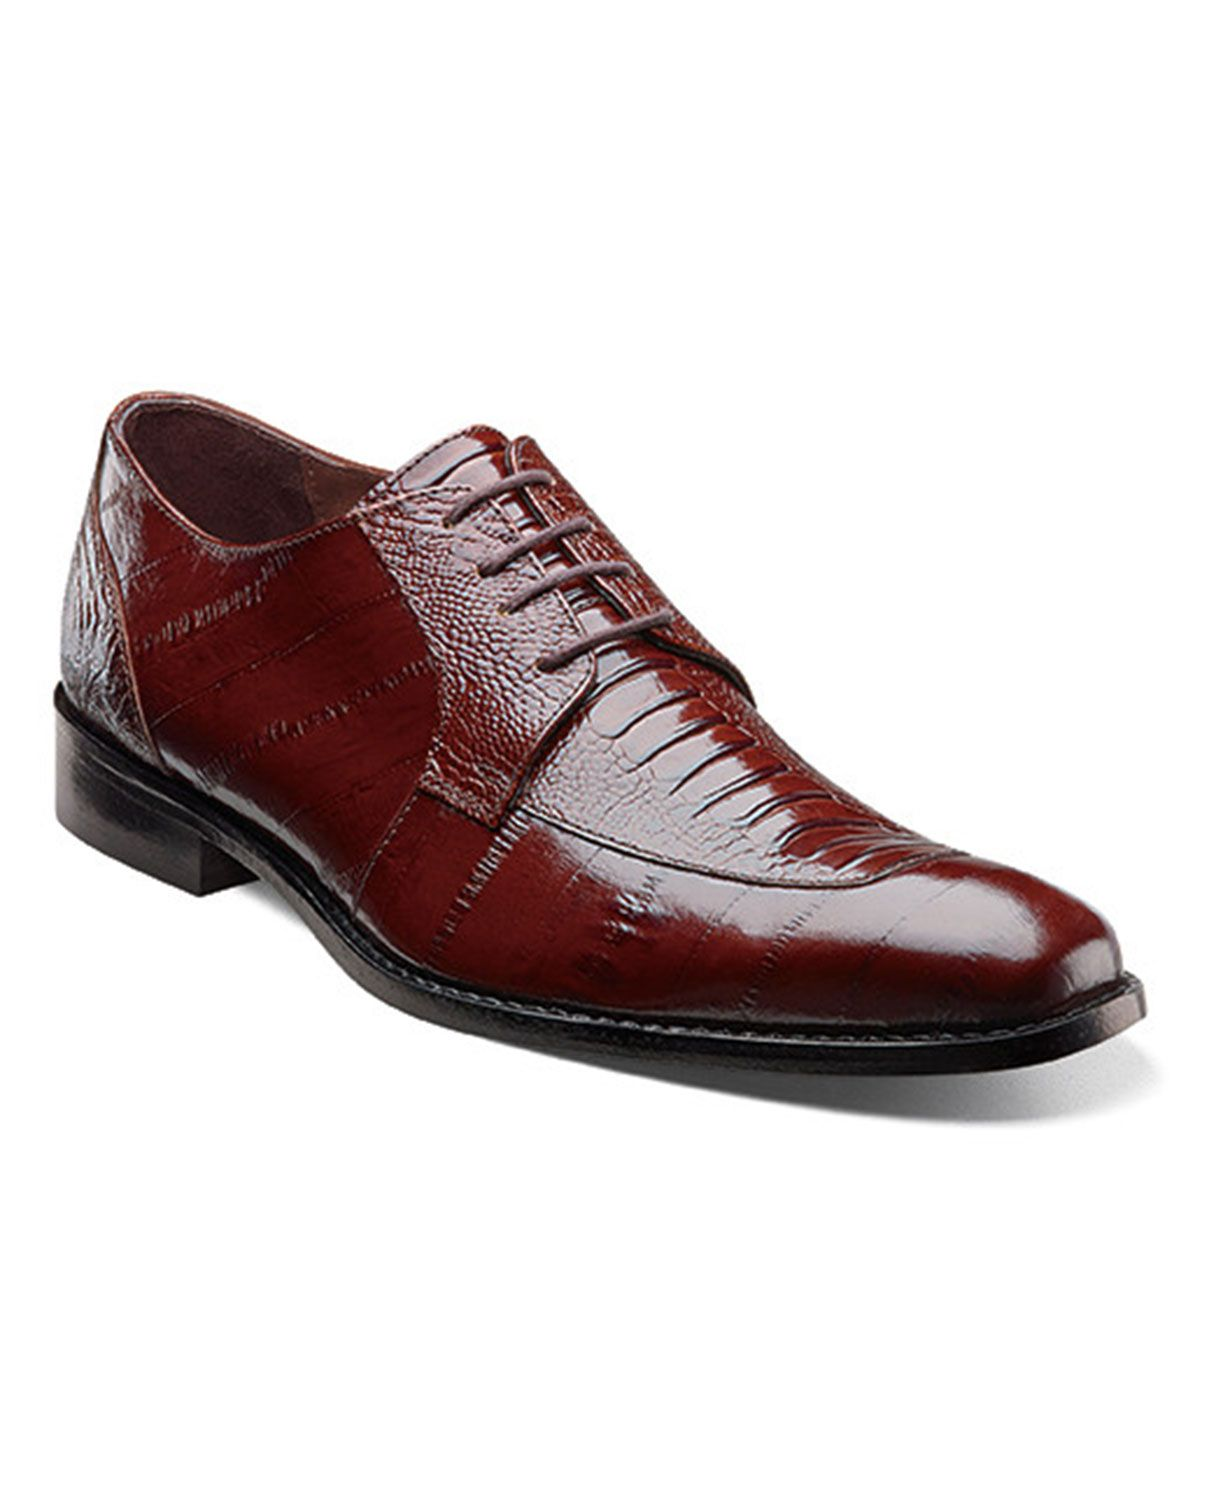 These Stacy Adams dress shoes sports ostrich leg and eel skin printed  leather. The combo